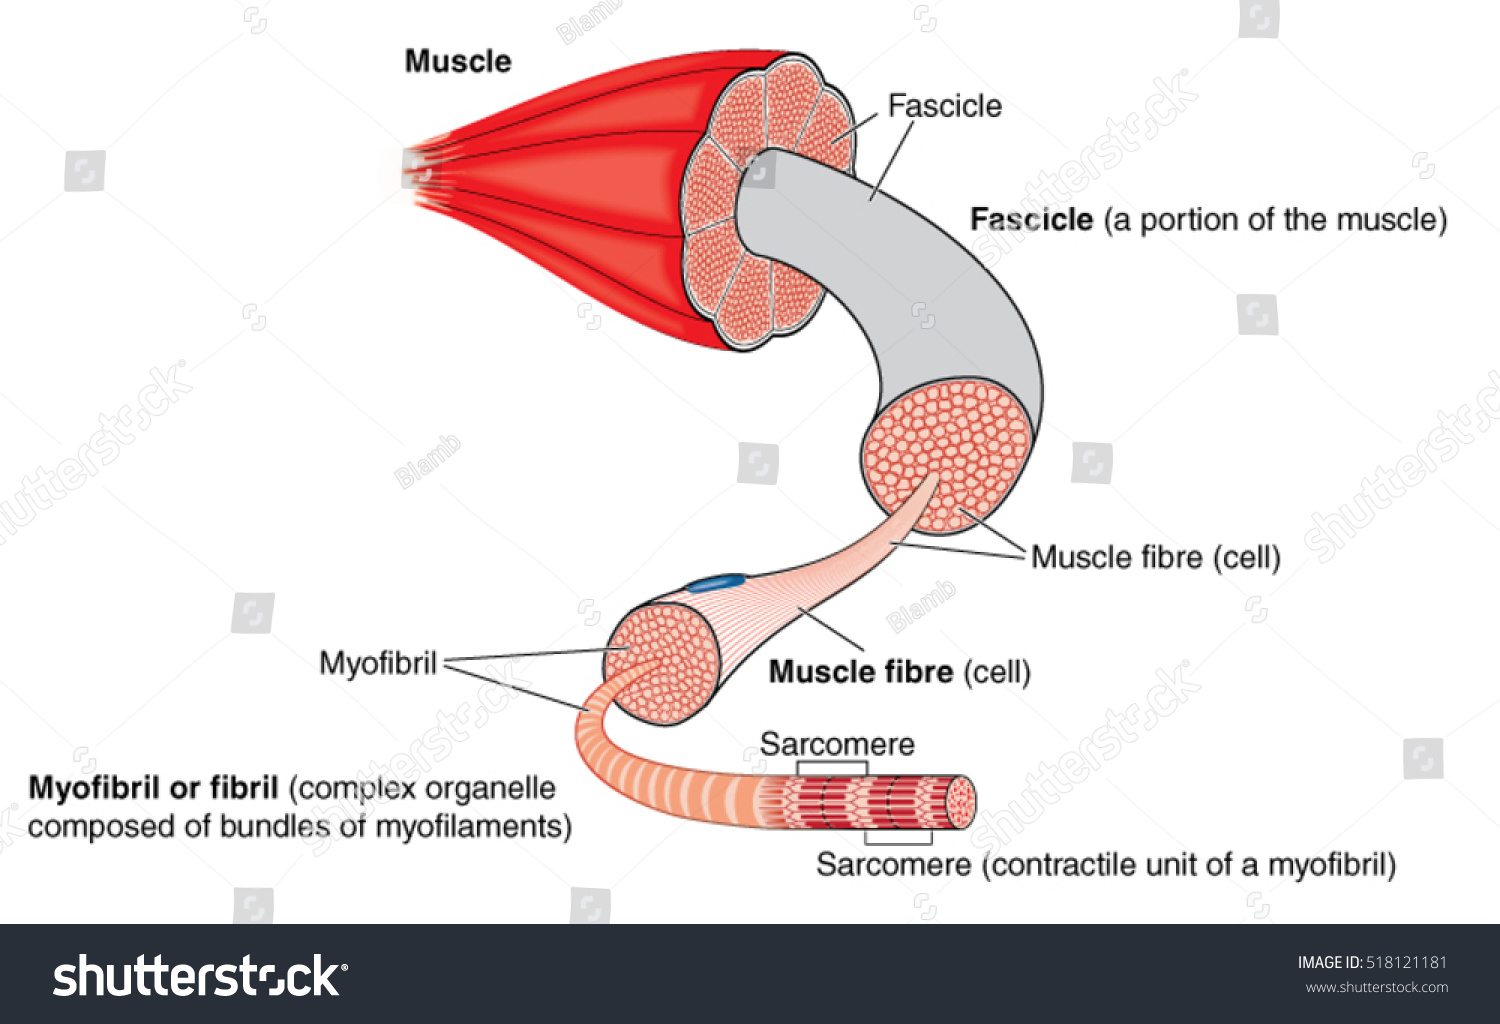 Anatomy Muscle Gross Structure Level Myofibril Stock Vector (Royalty ...